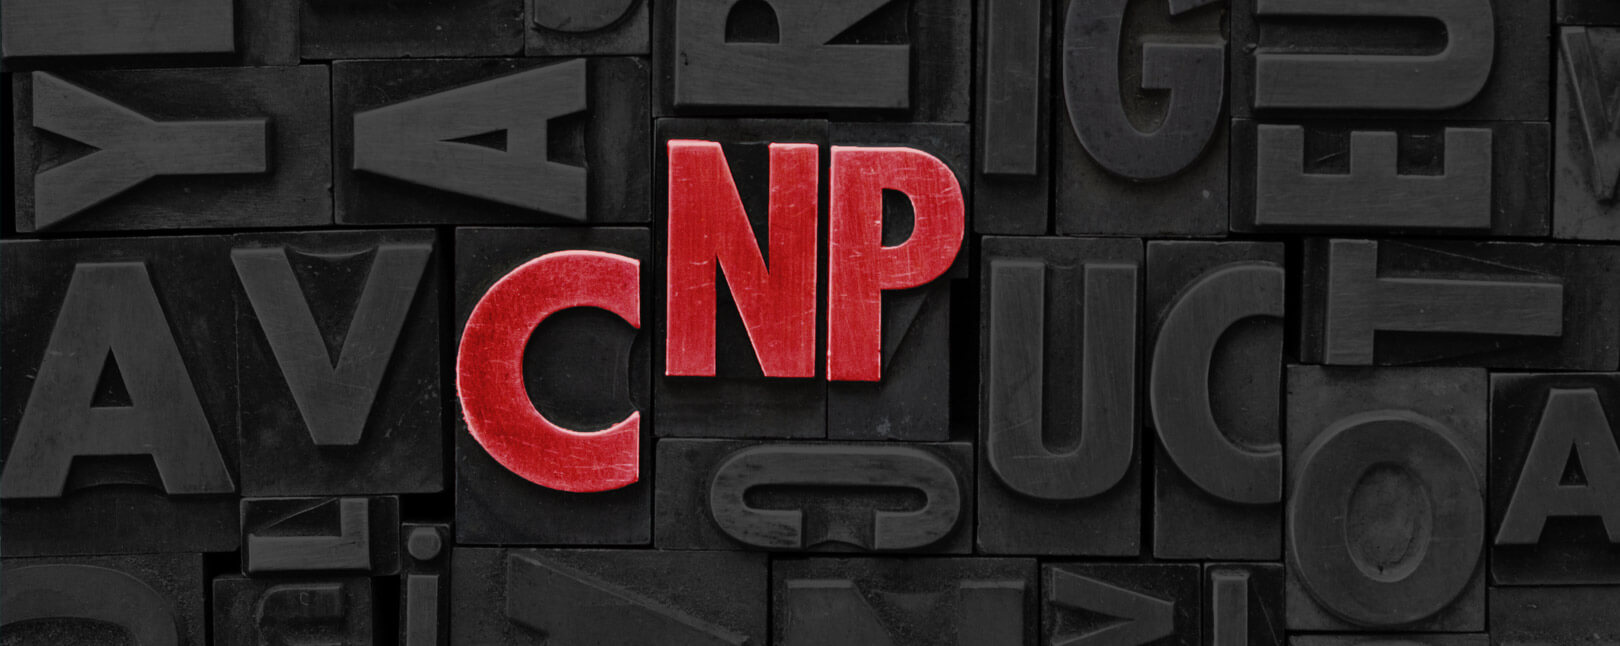 CNP Transactions